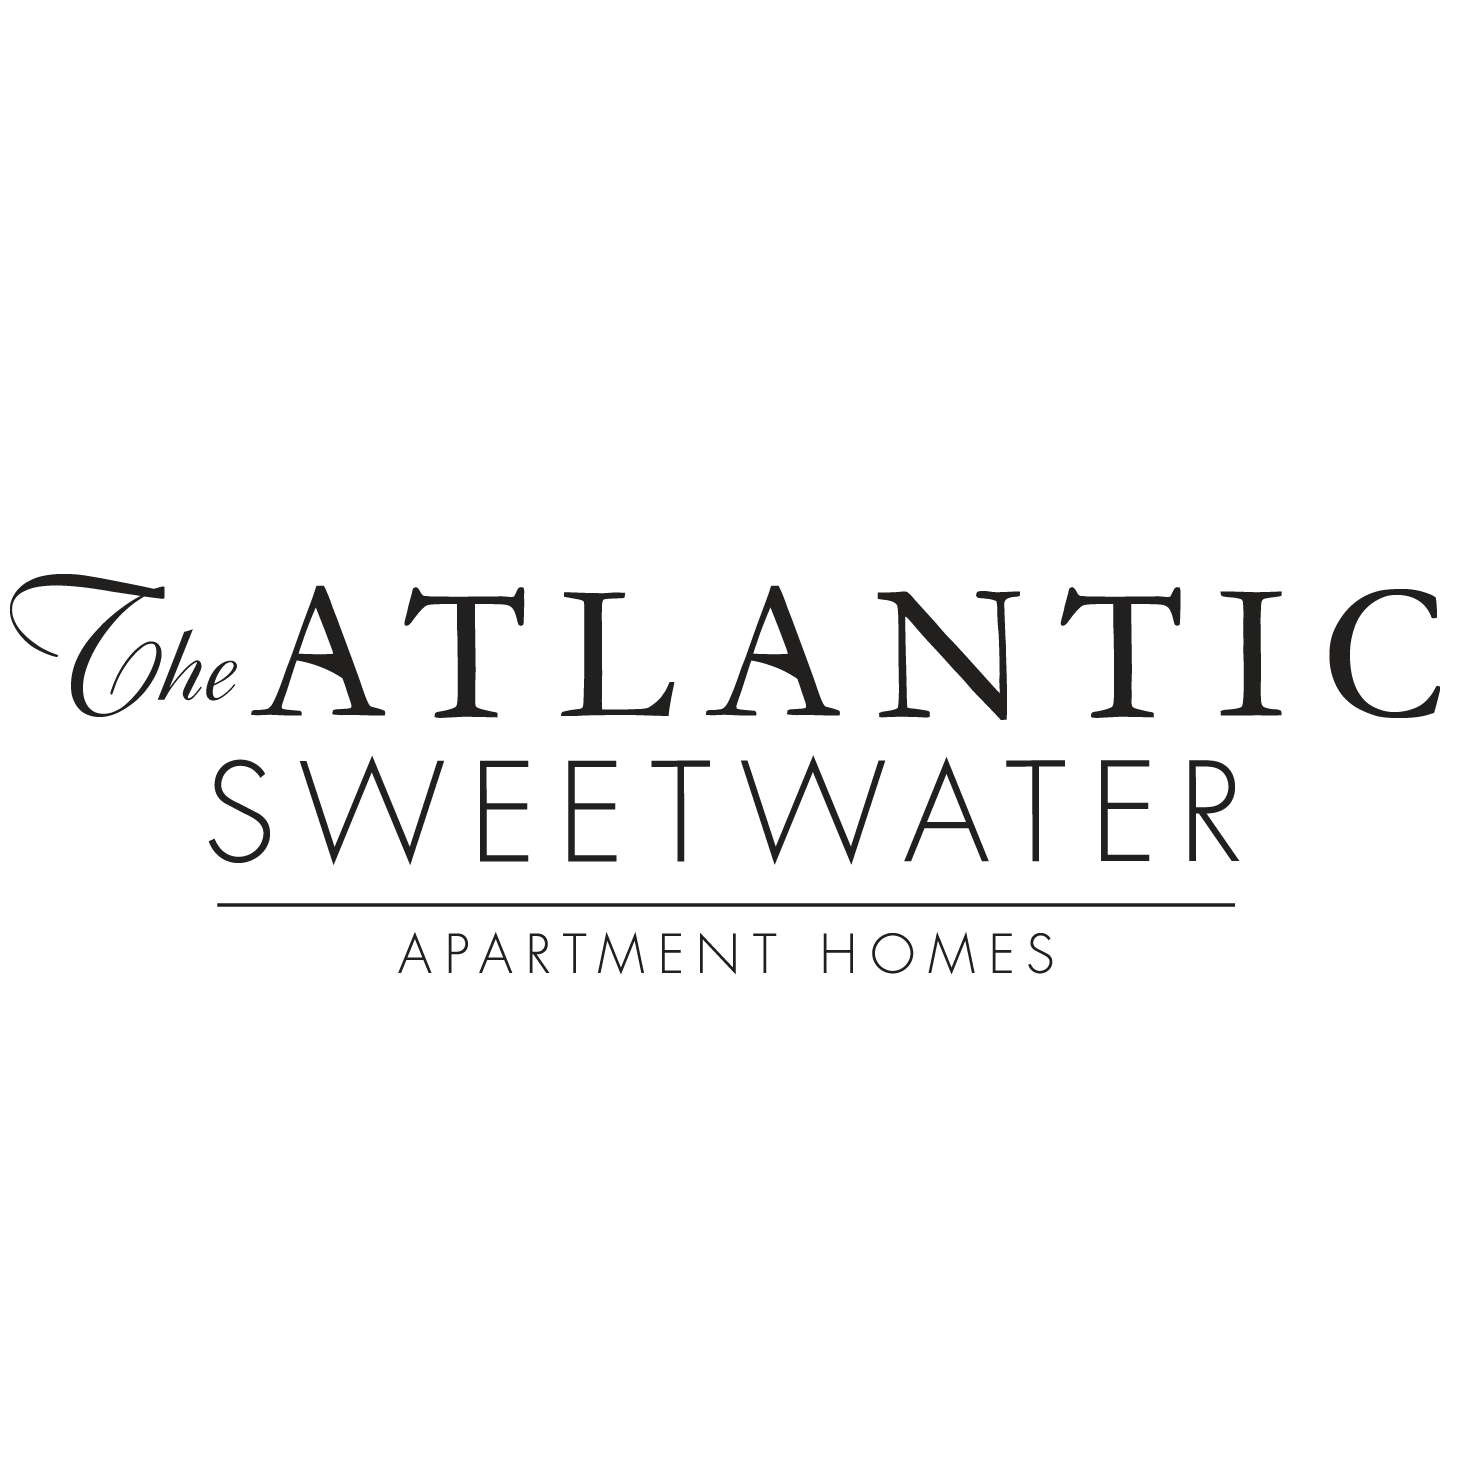 The Atlantic Sweetwater